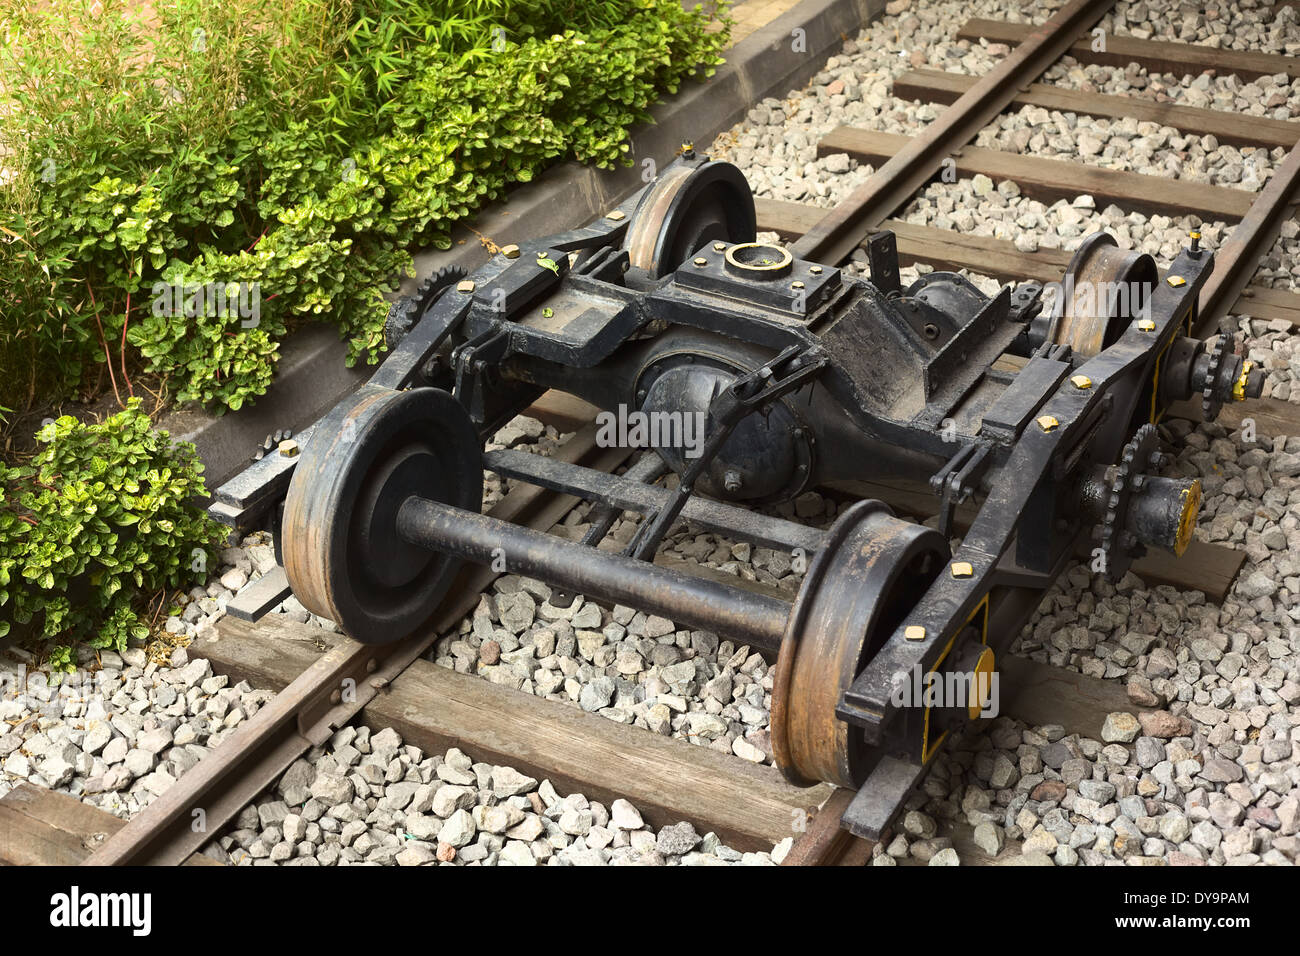 Mechanic trailer used to pull waggons at the train station in Riobamba, Ecuador - Stock Image